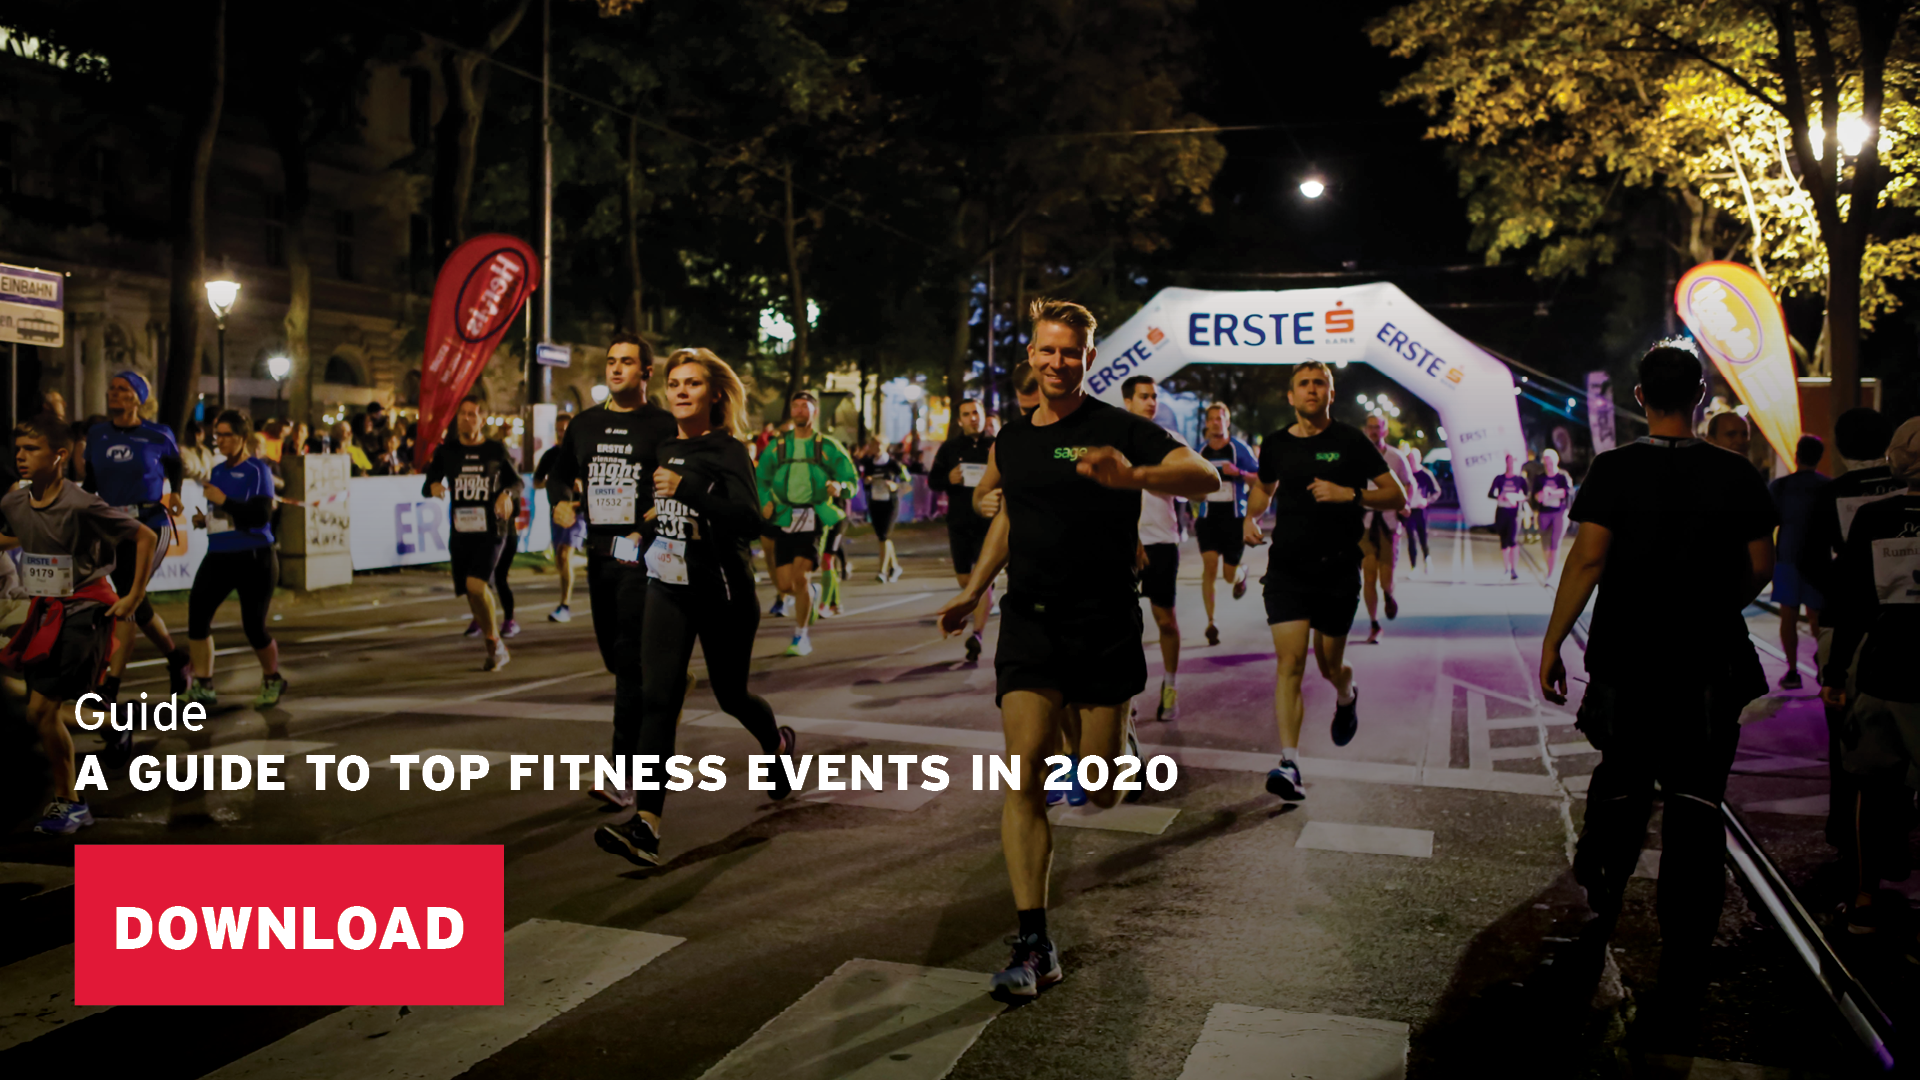 Download: Guide to top fitness events in 2020